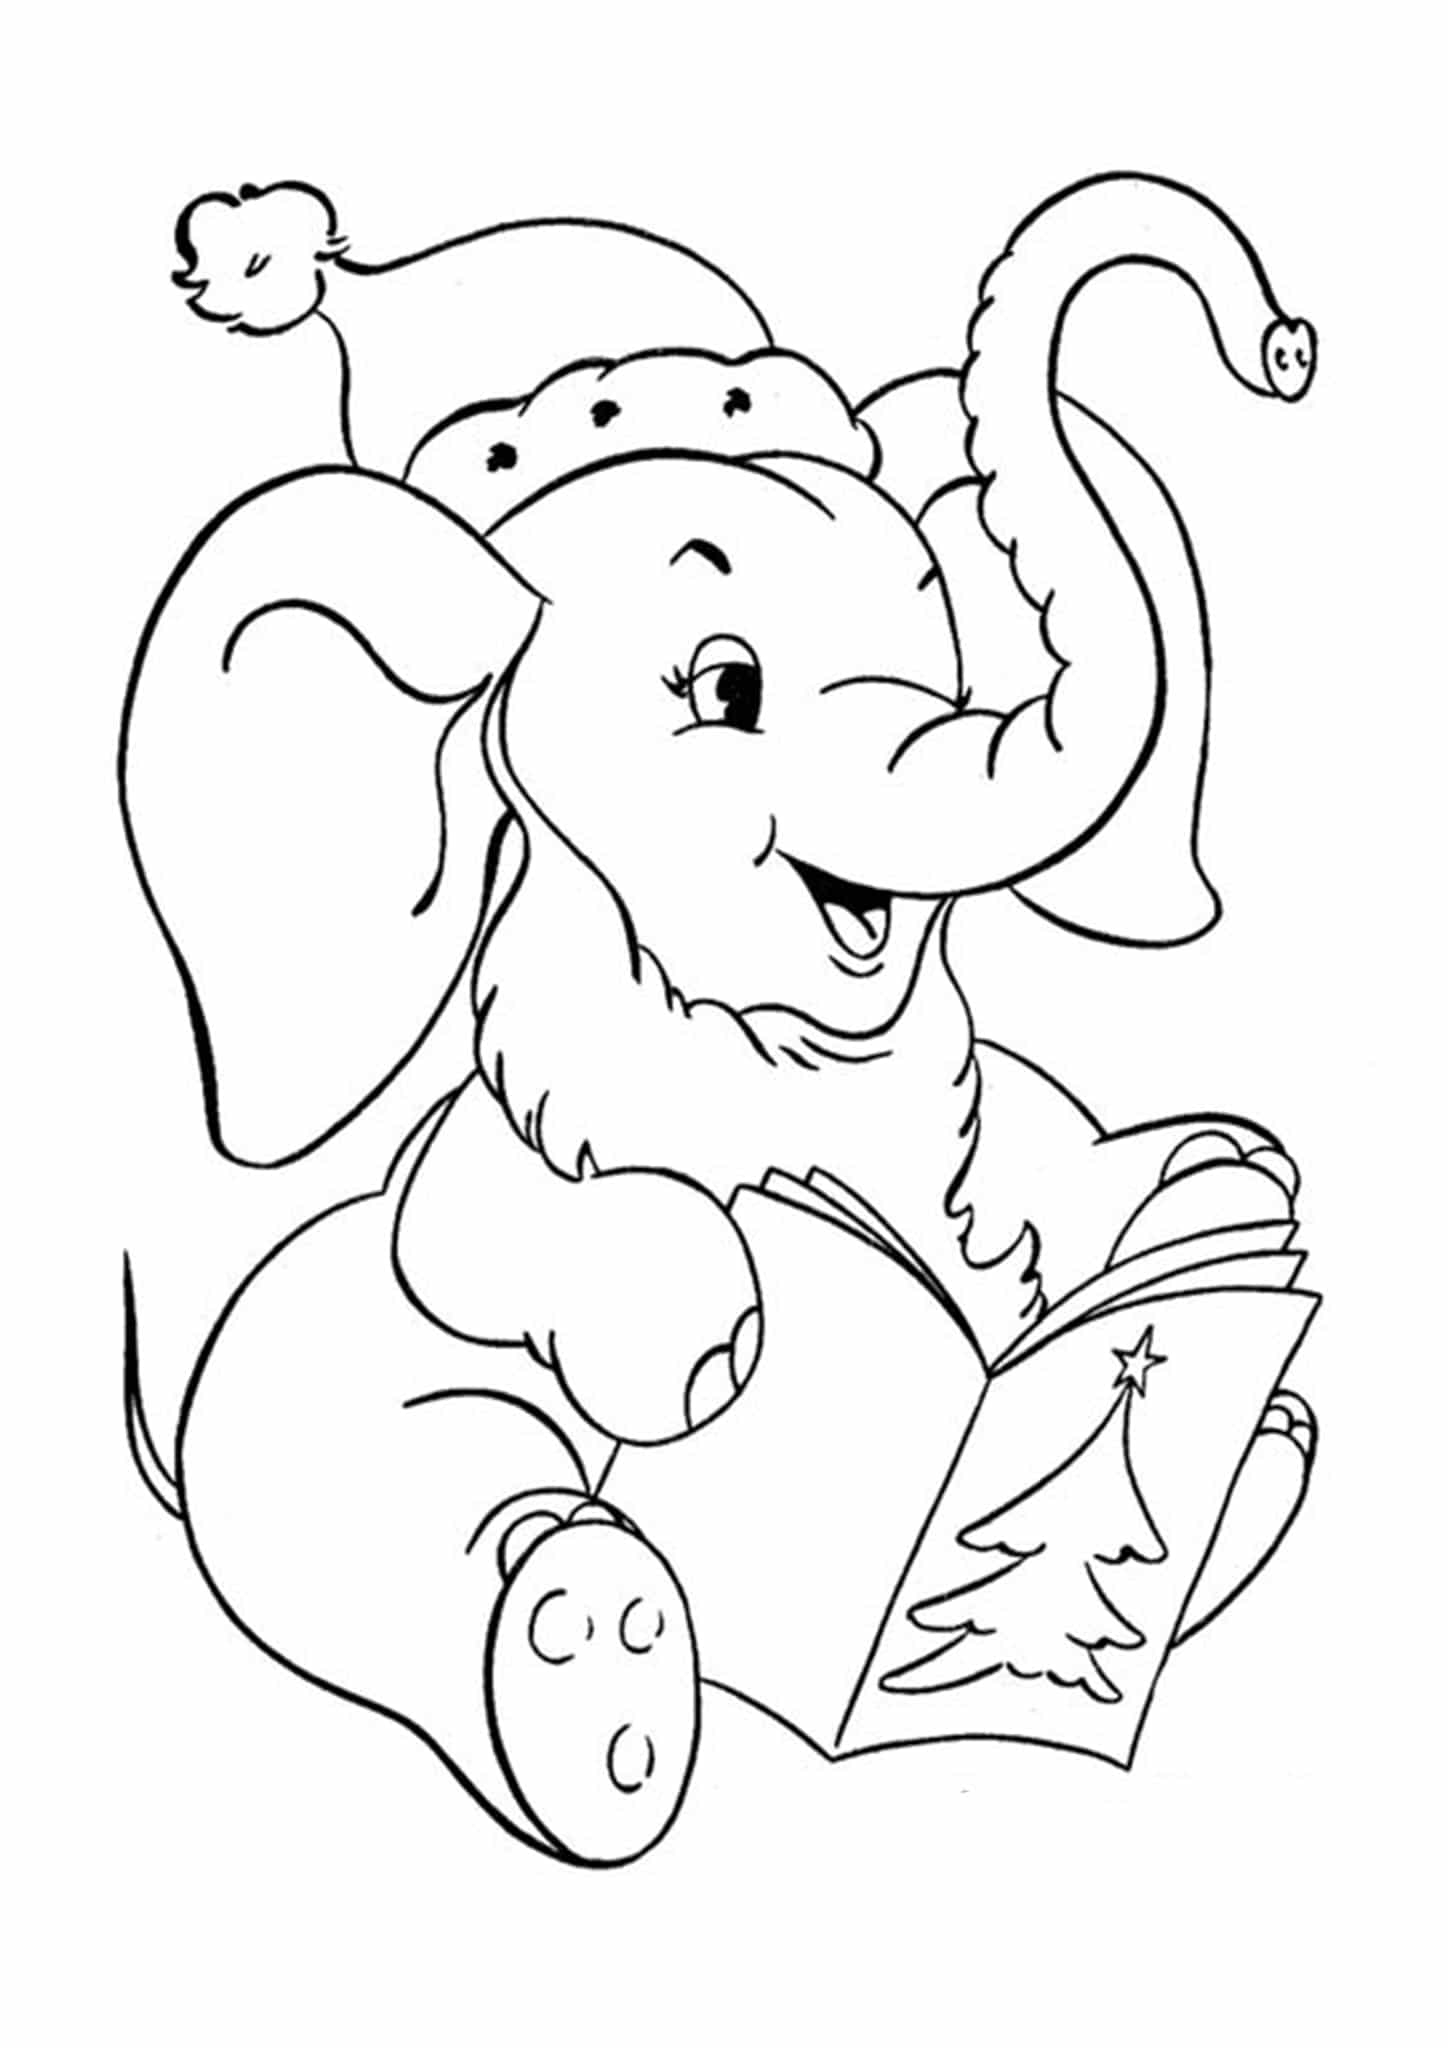 coloring pages elephants free easy to print elephant coloring pages tulamama coloring pages elephants